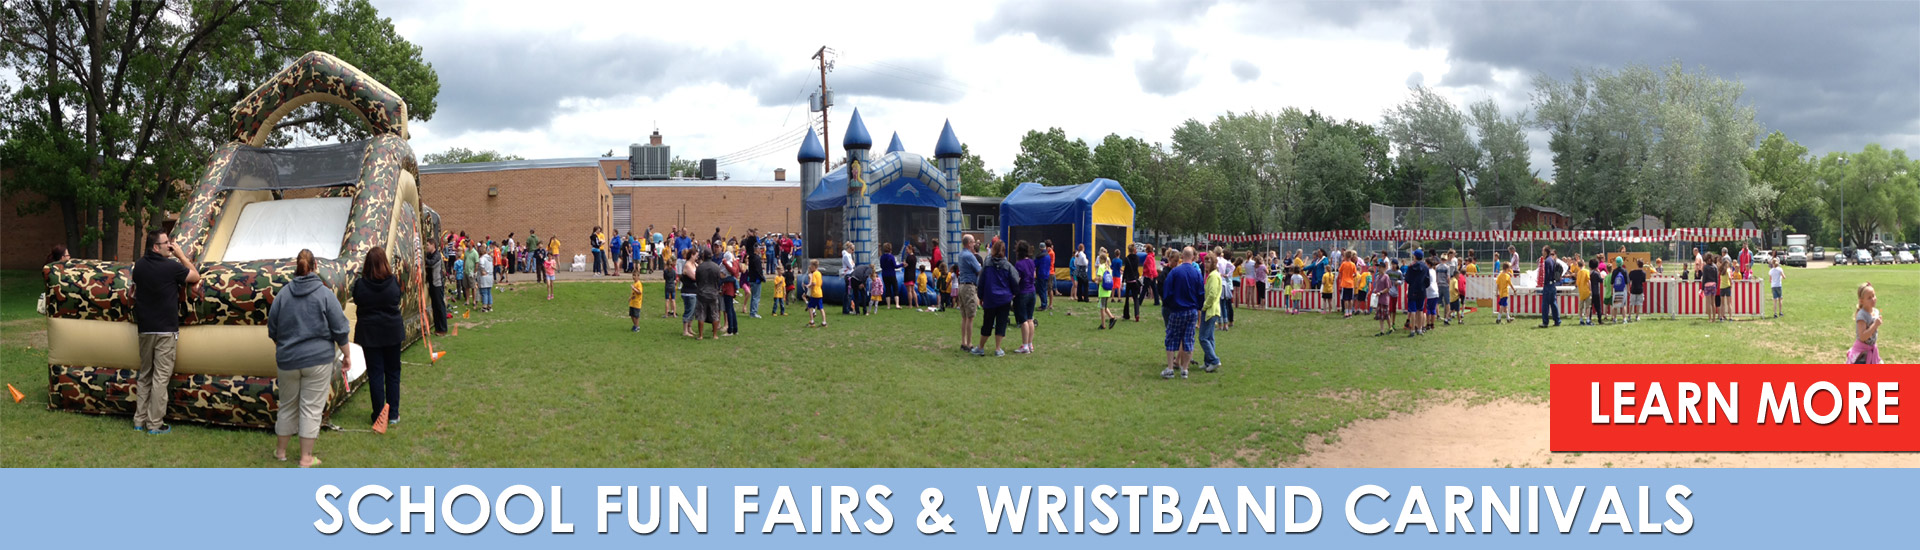 School Fun Fairs - Wristband Carnivals by Fun Events, Inc.